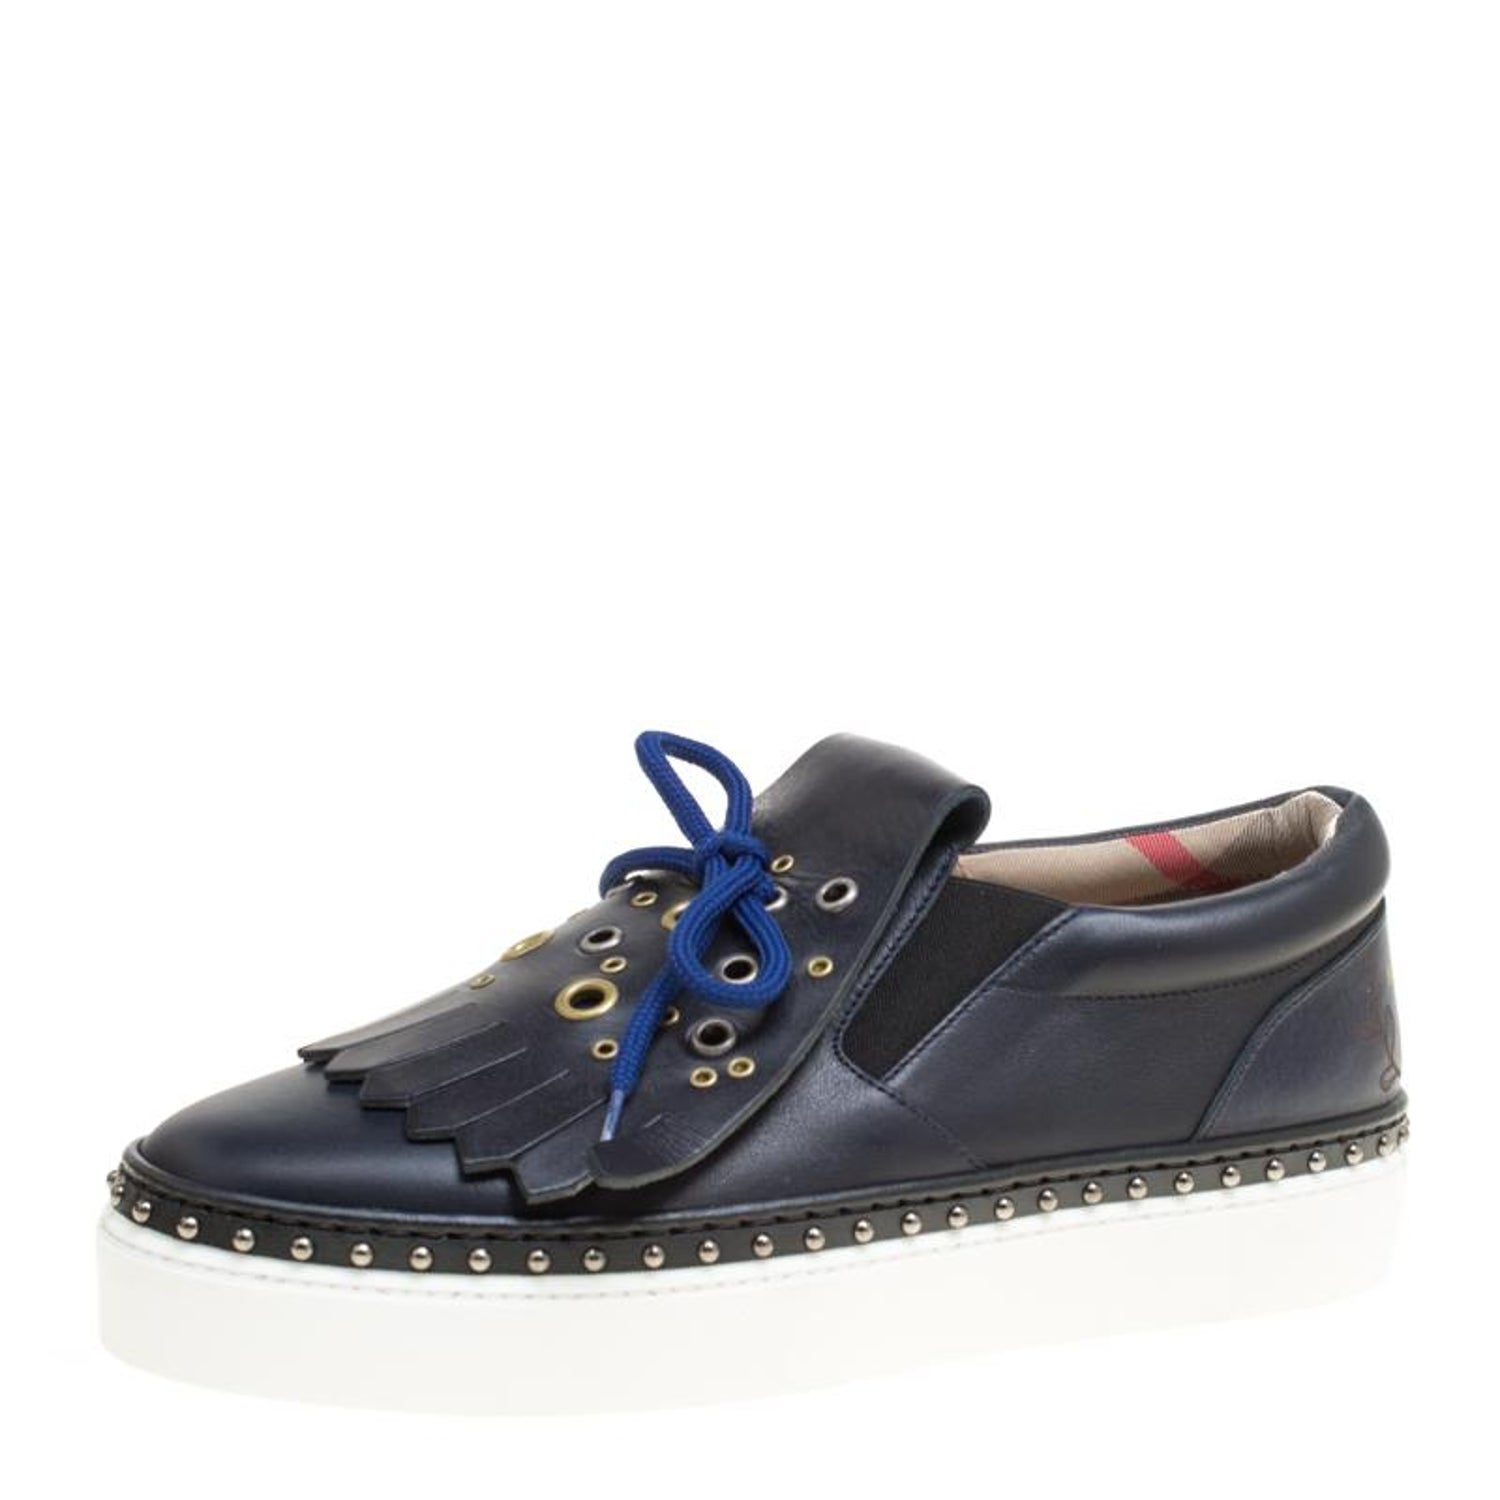 9c265ca0876 Burberry Navy Blue Leather Kiltie Fringe Slip On Sneakers Size 38.5 For Sale  at 1stdibs